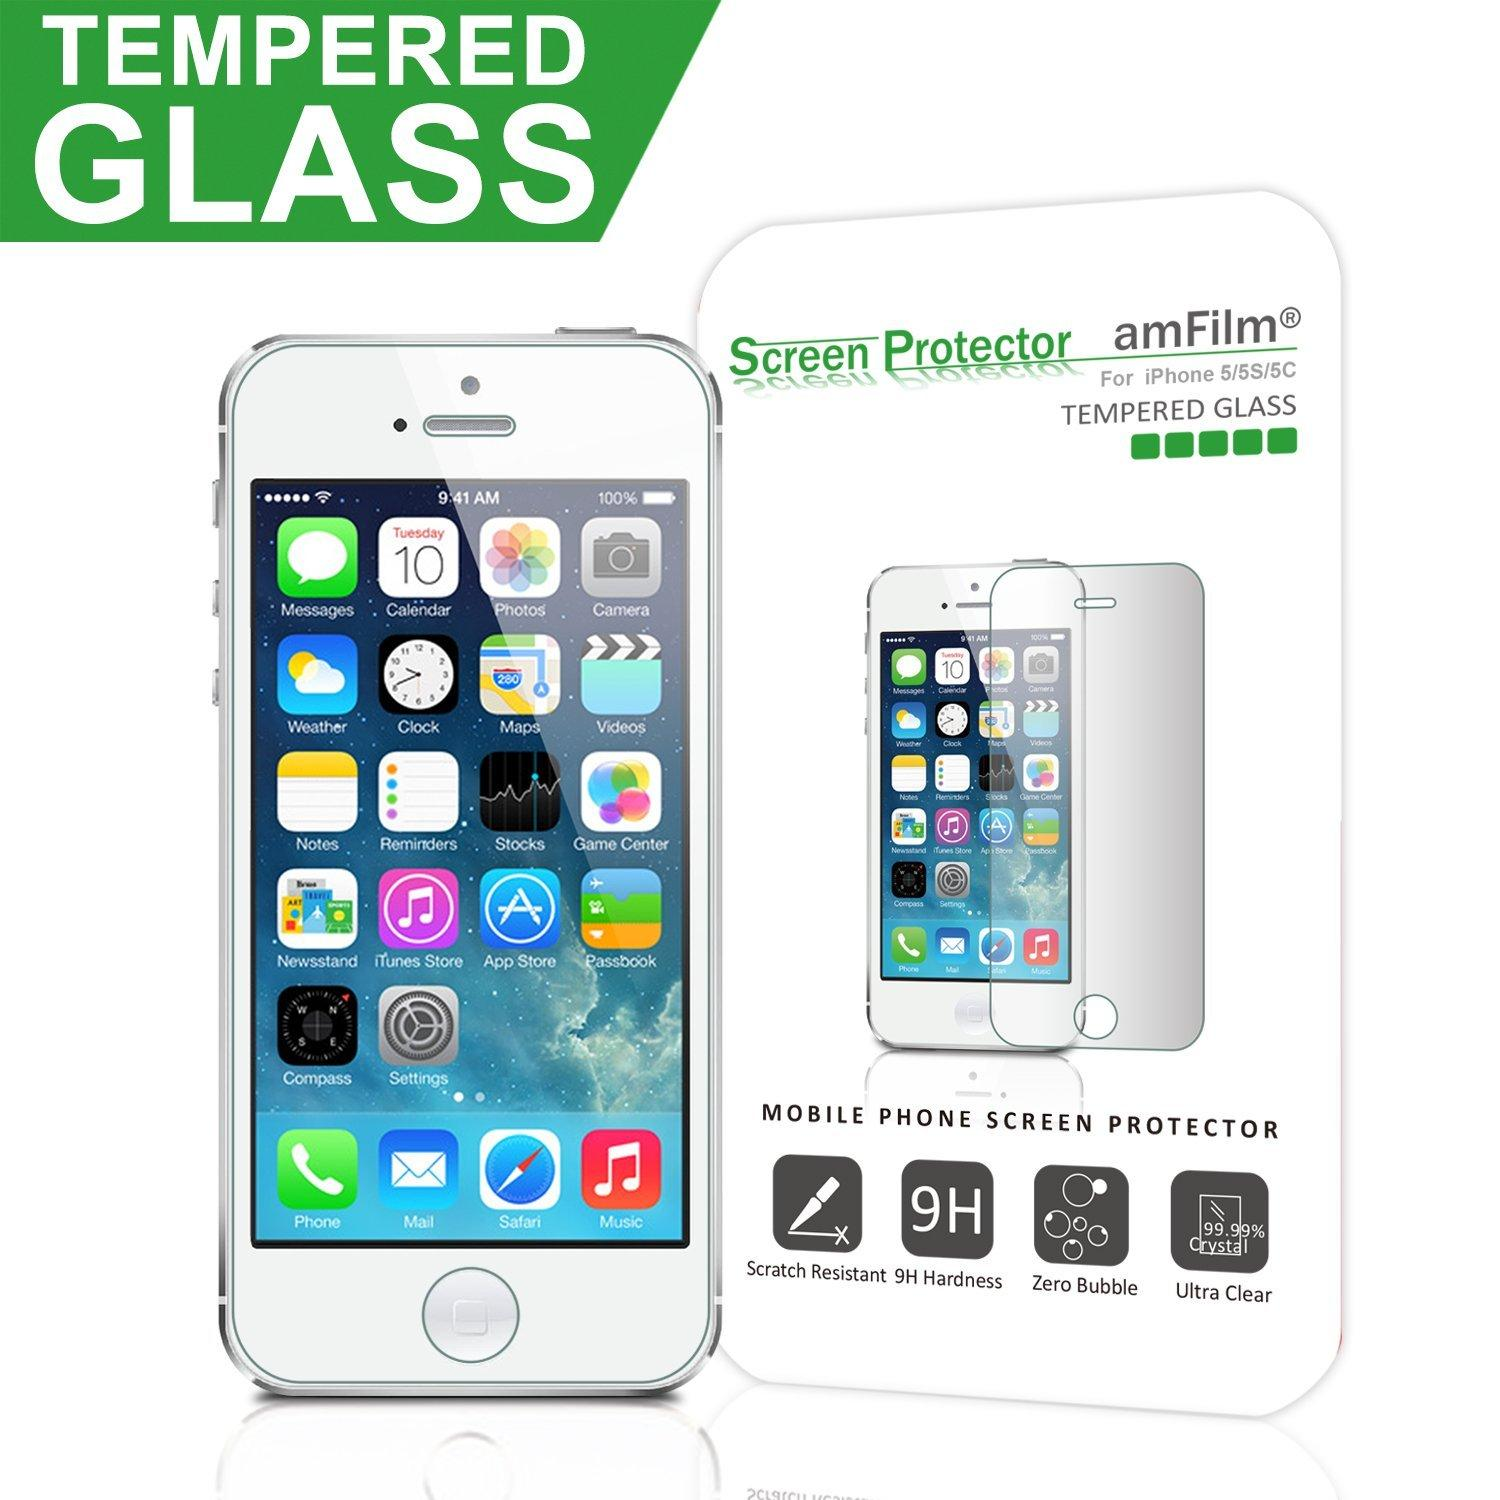 iPhone 5/5S/5C Screen Protector Glass